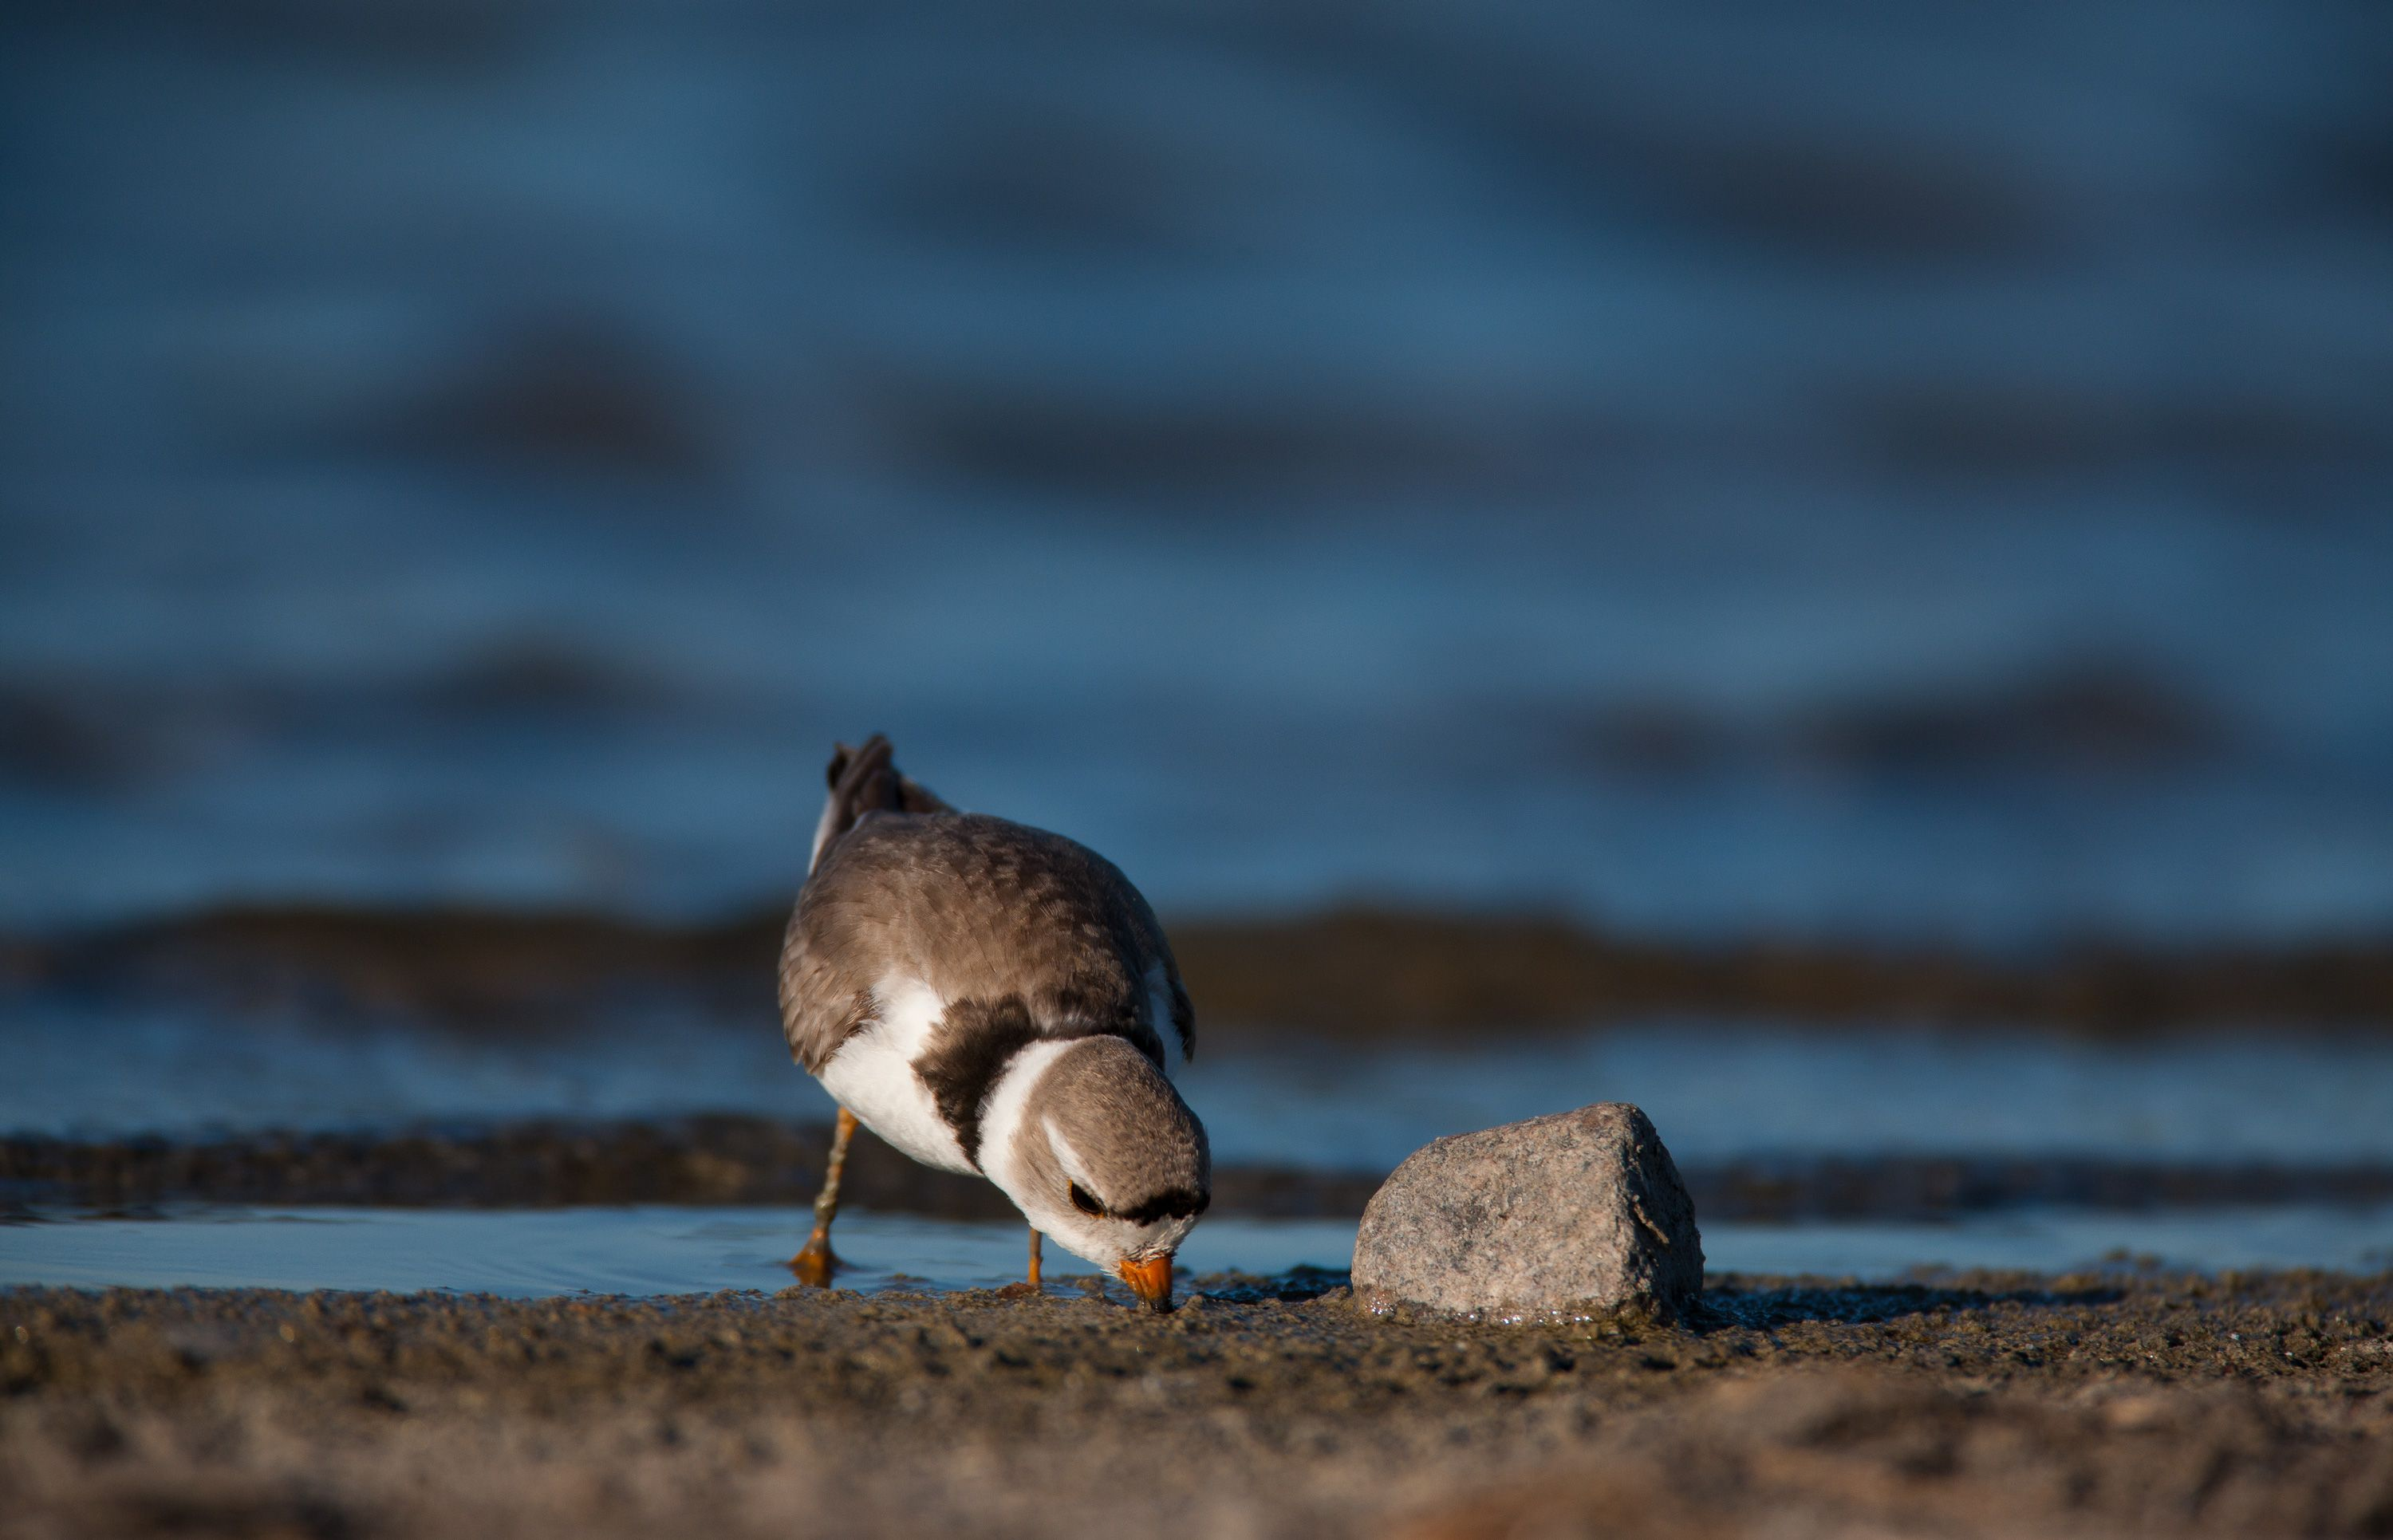 piping plover on a beach.